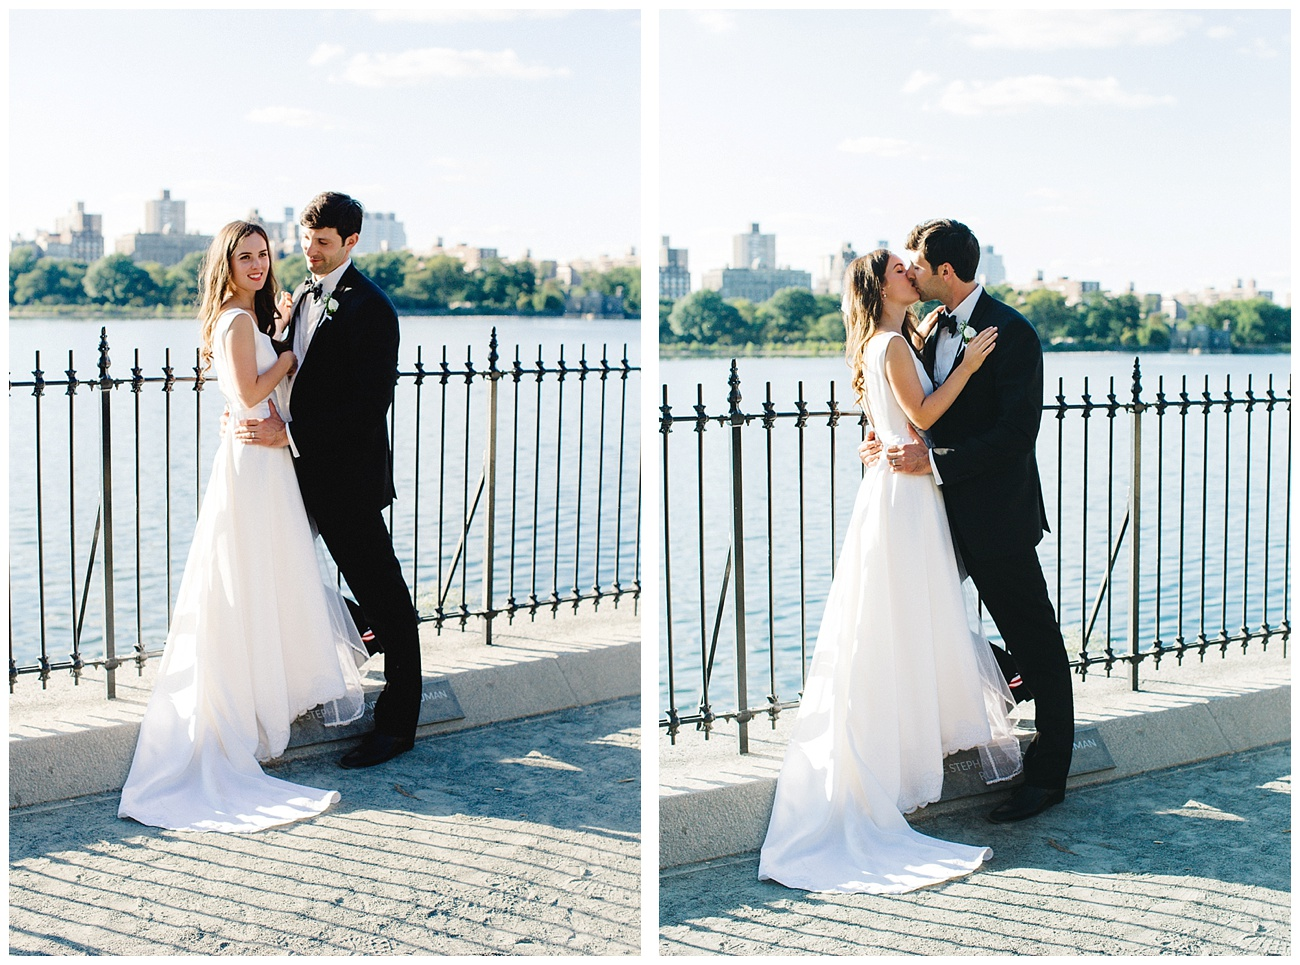 Christine Ted NYC Elopement Wedding_0031